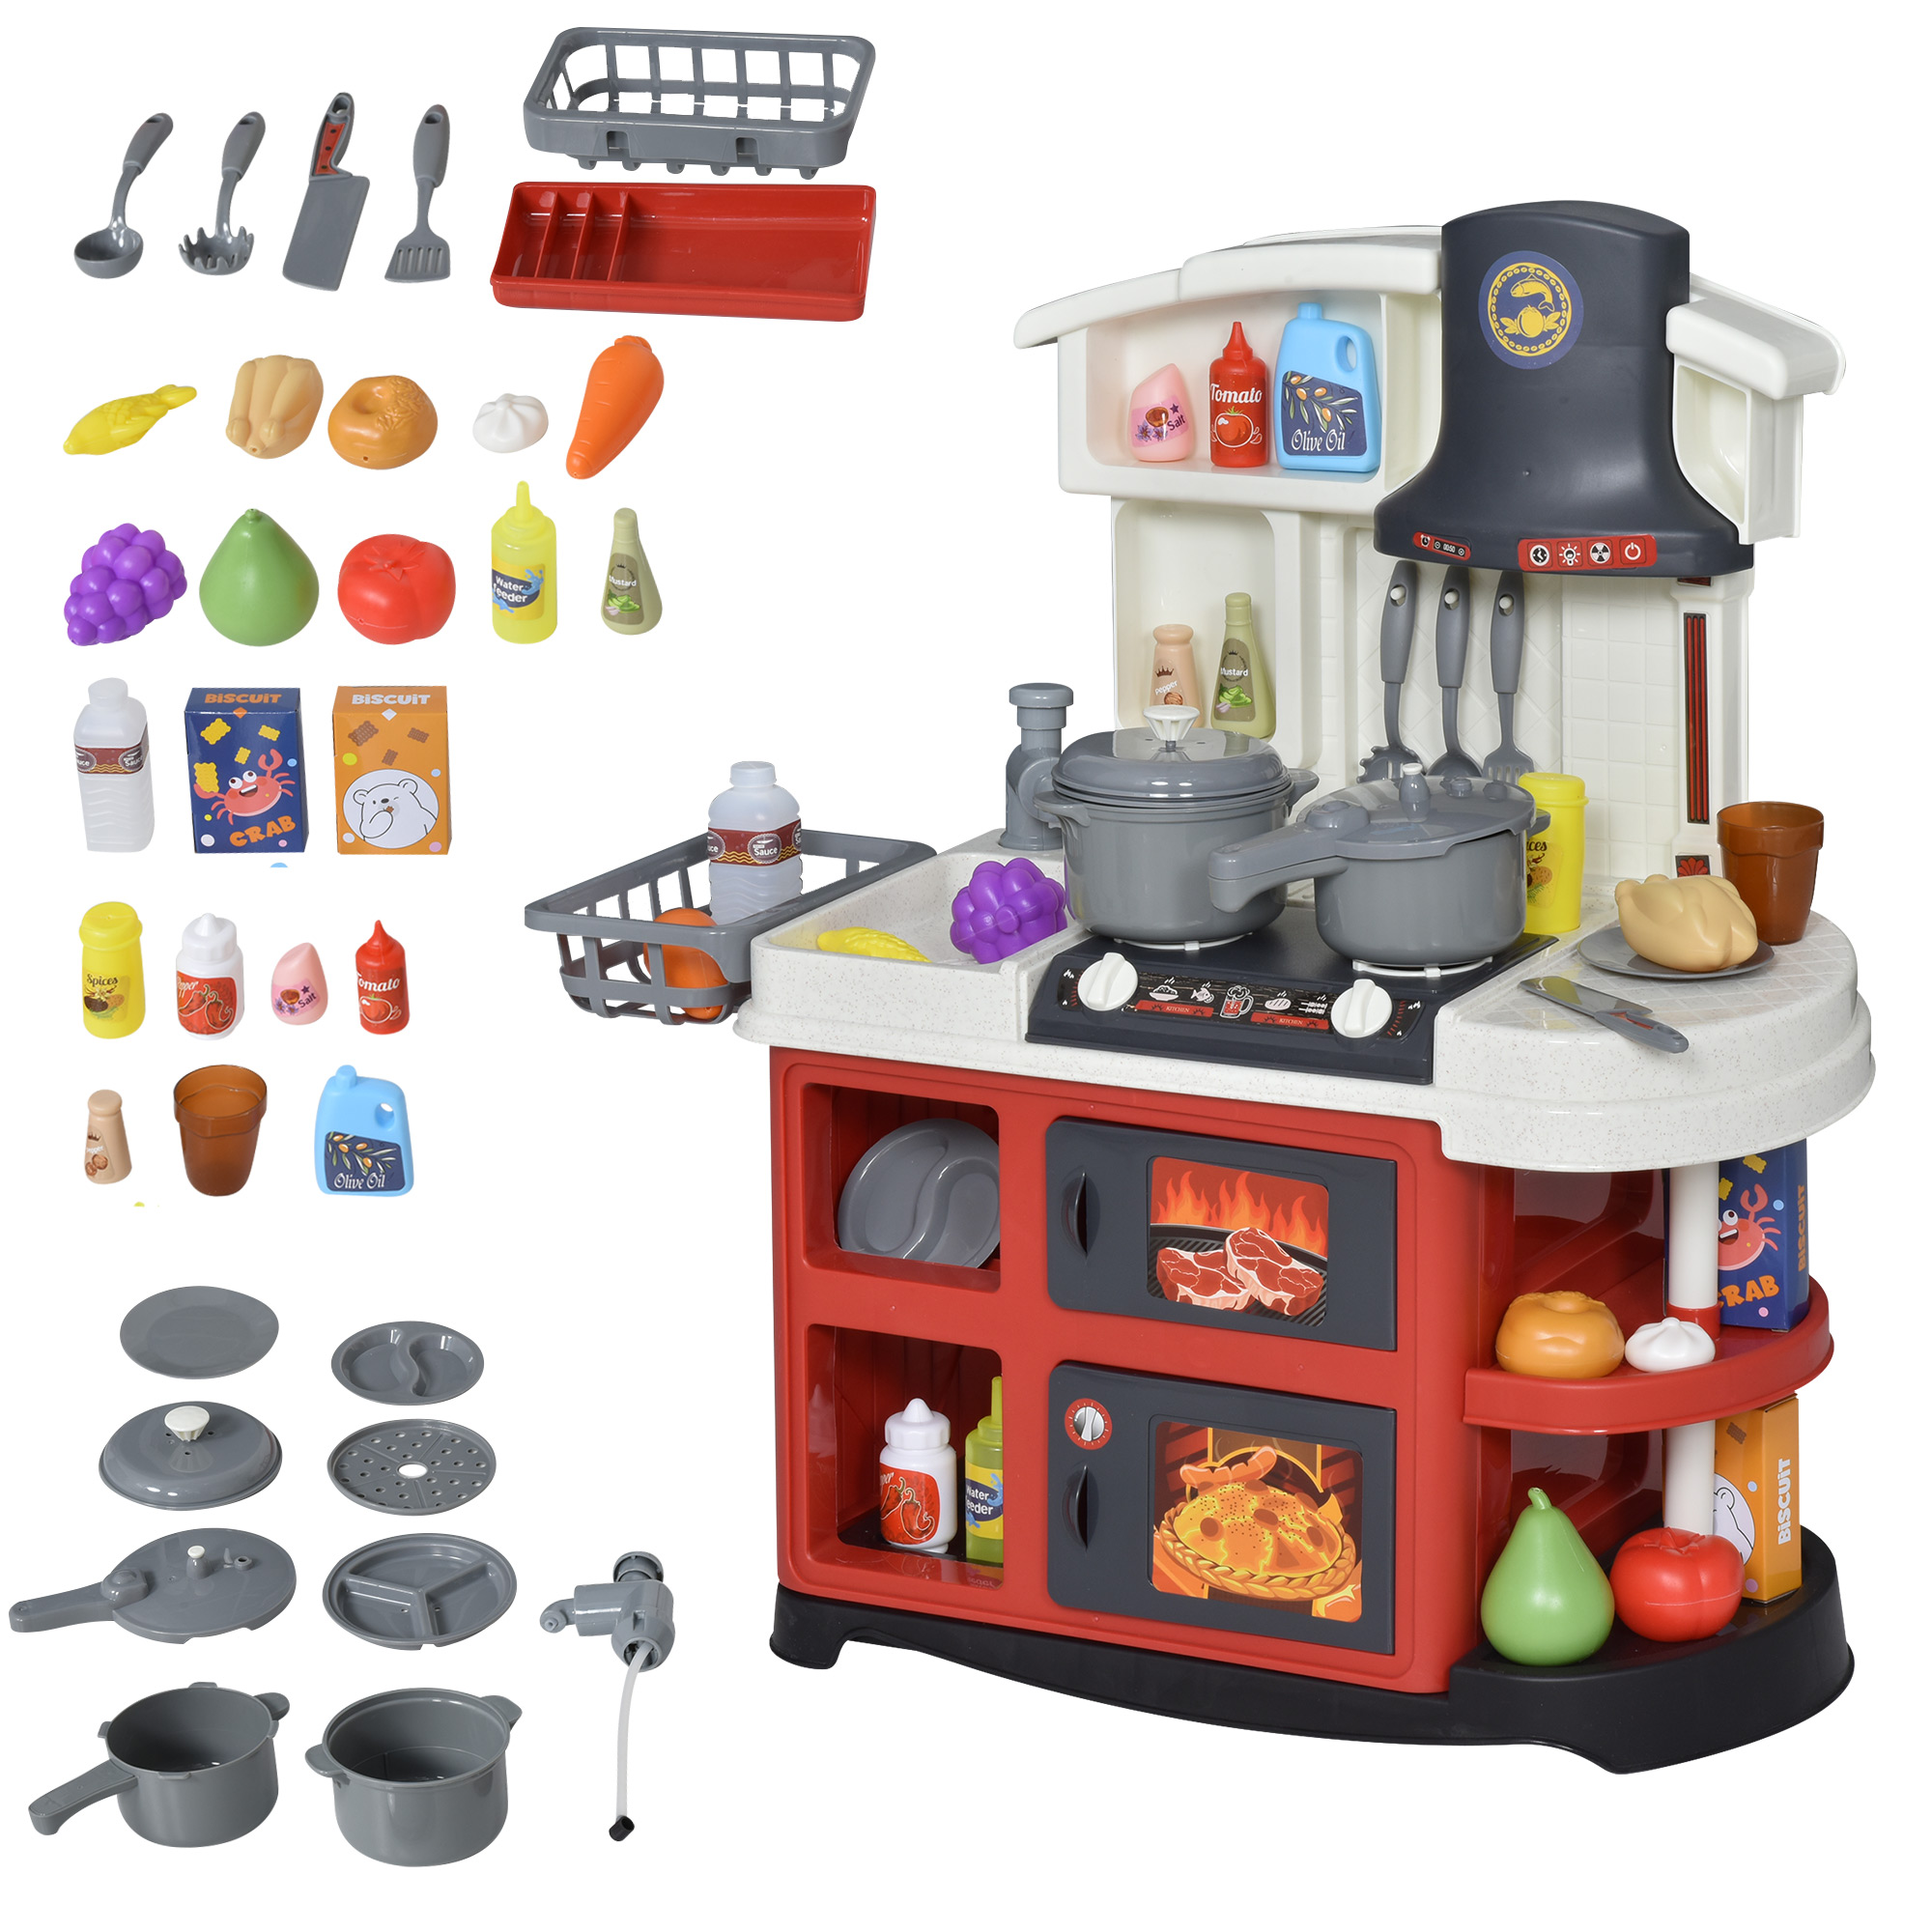 HOMCOM Kids Kitchen Playset Role Play Game Toy with Lights Sounds Spray Sink Running Water | Aosom IE